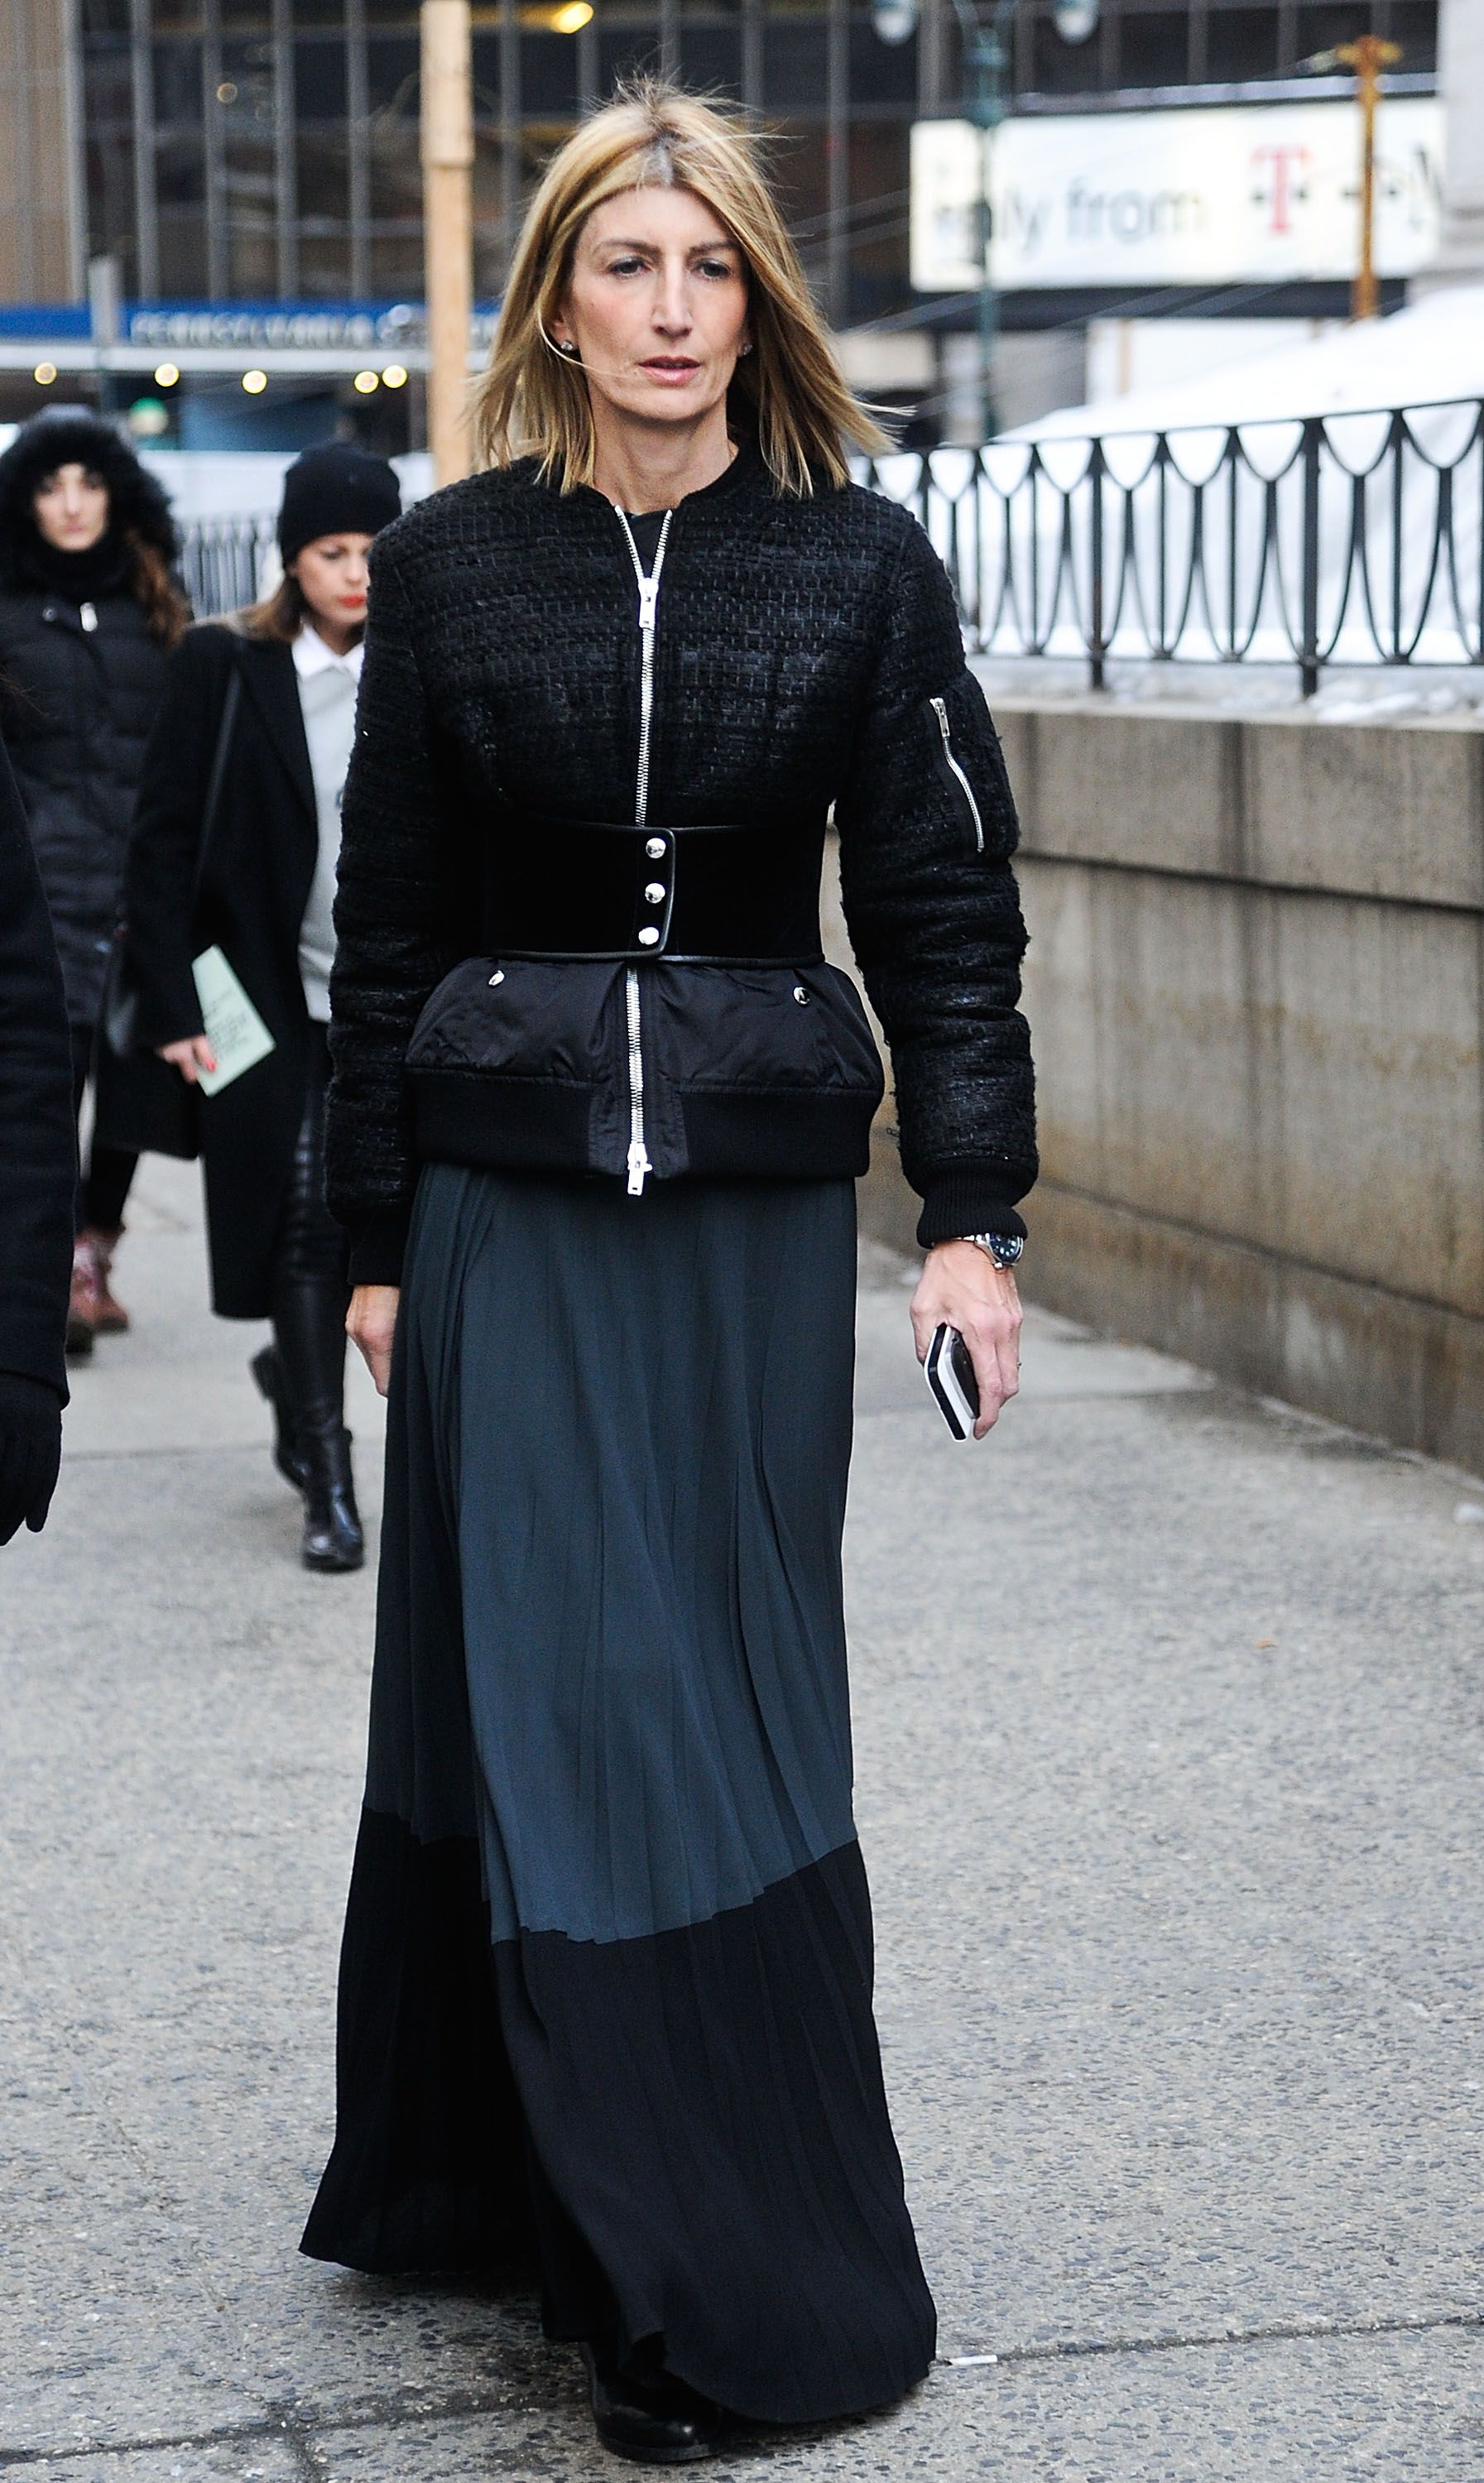 NYFW Street Style Day 2: Sarah Rutson brought the drama to Fashion Week with a floor-sweeping skirt.